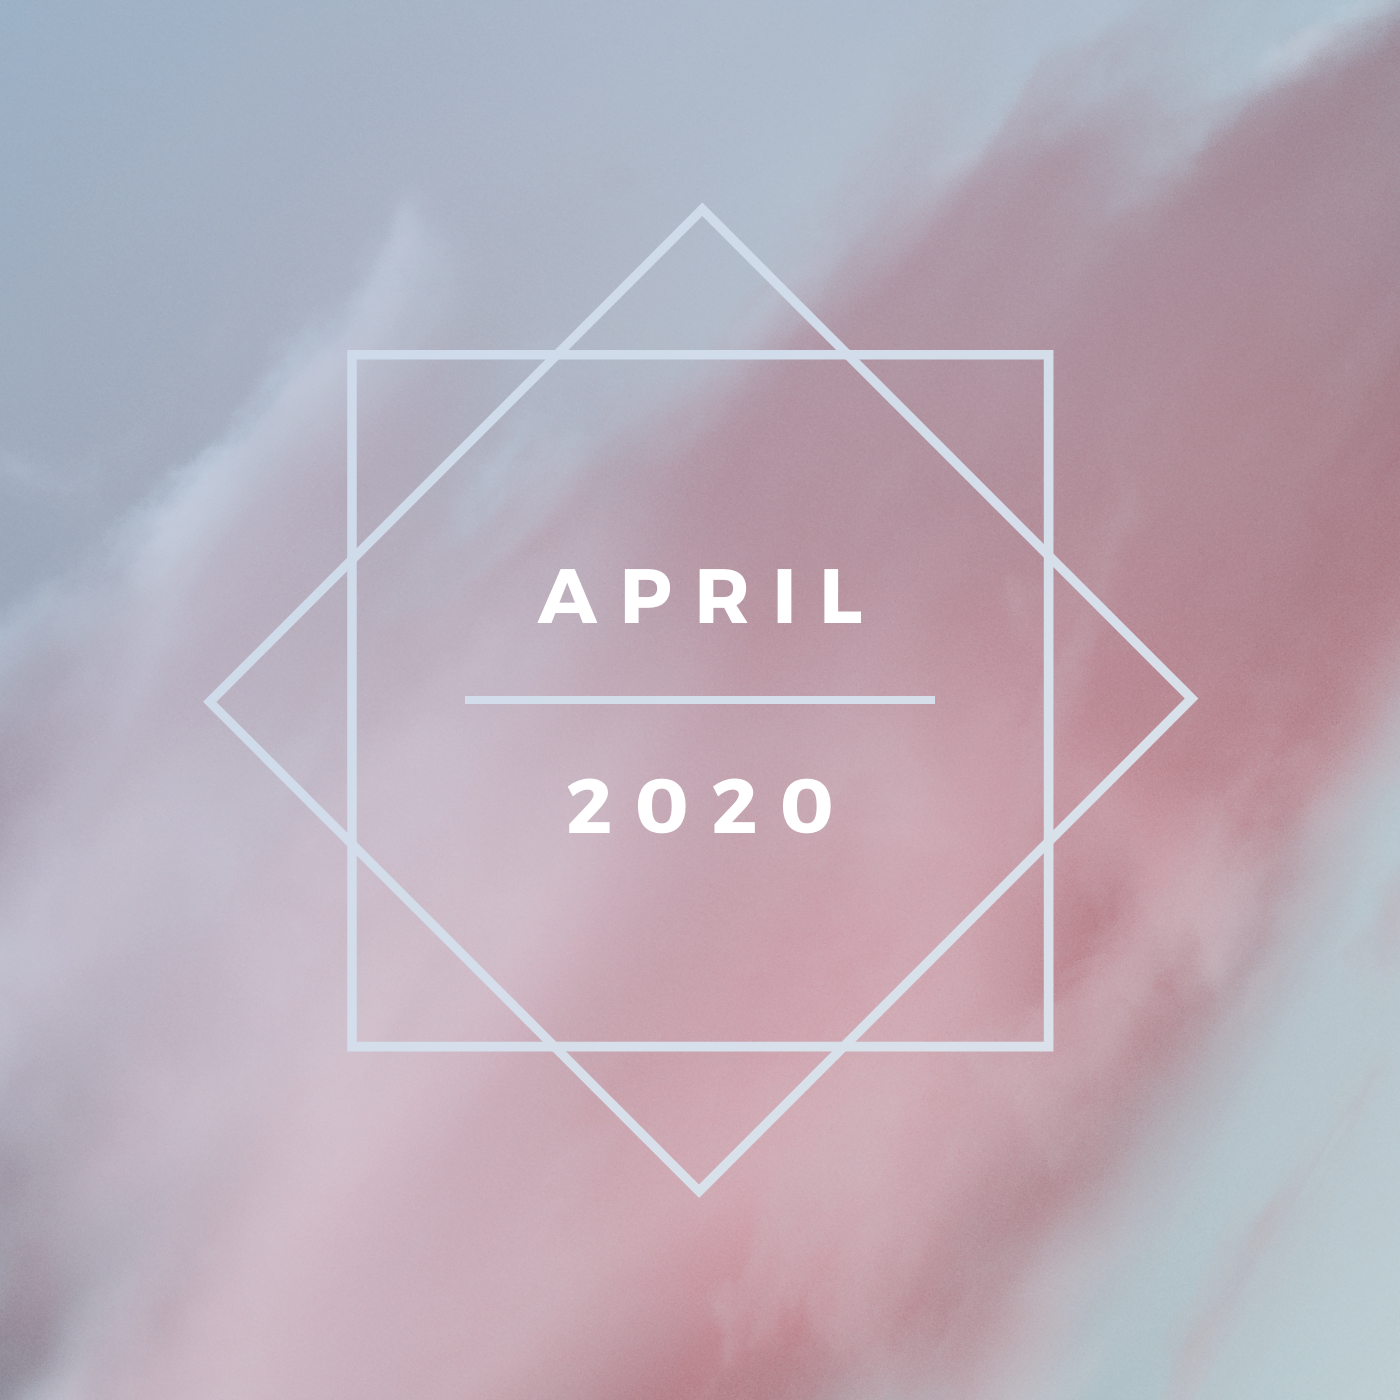 a square image of a gray-blue sky with a thick streak of pink clouds with two interlocking white boxes and white text saying april 2020